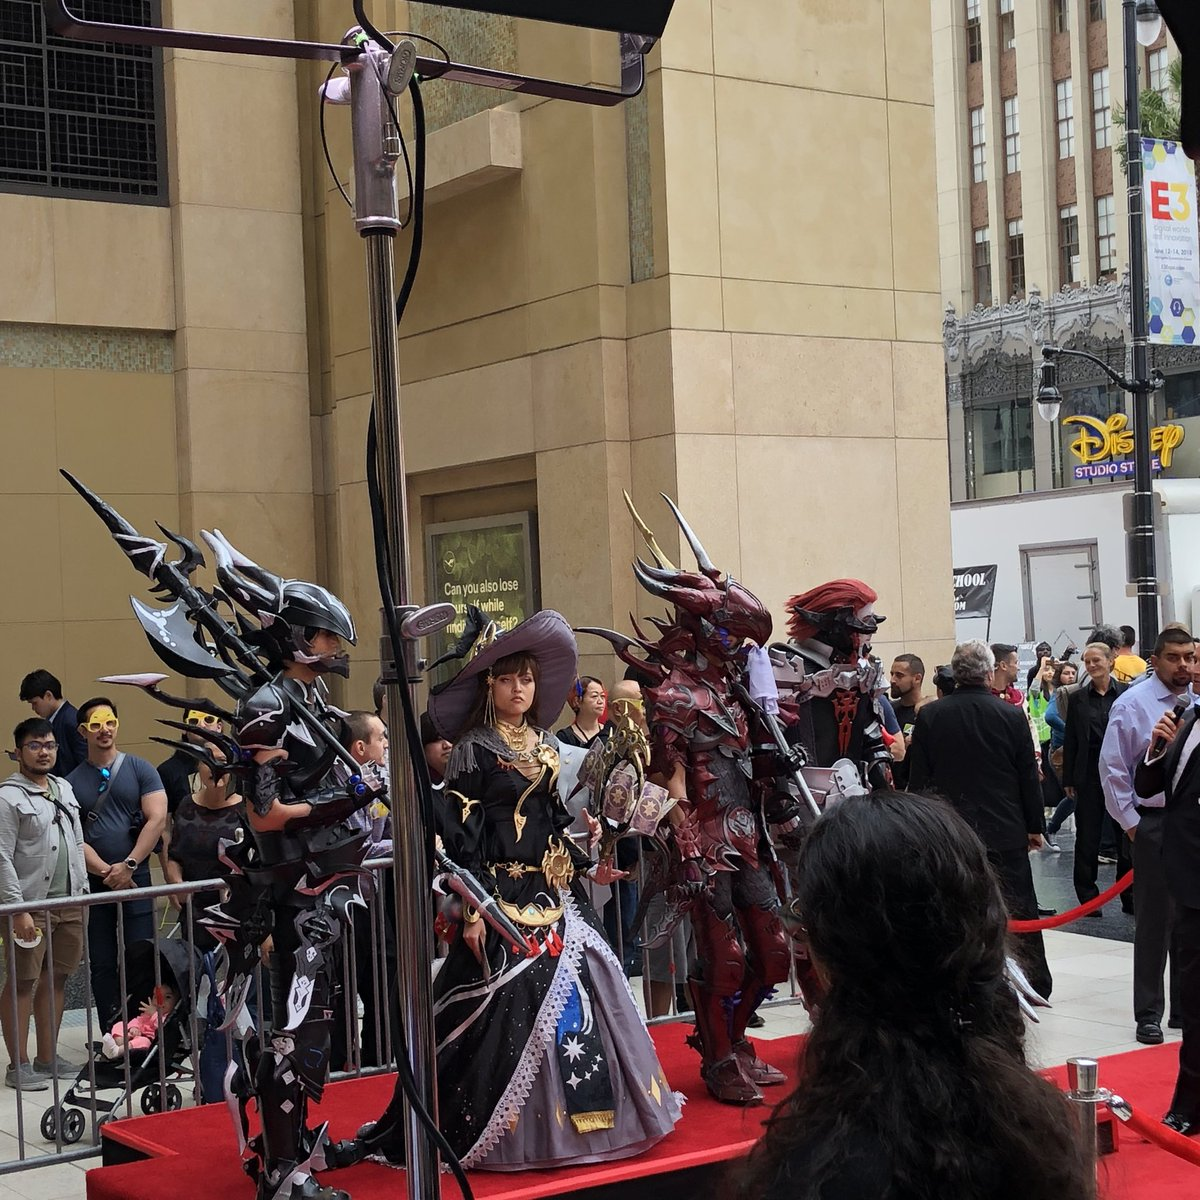 Final fantasy cosplay event for #eorzeansymphony at Dolby Theater. #FinalFantasyXIV